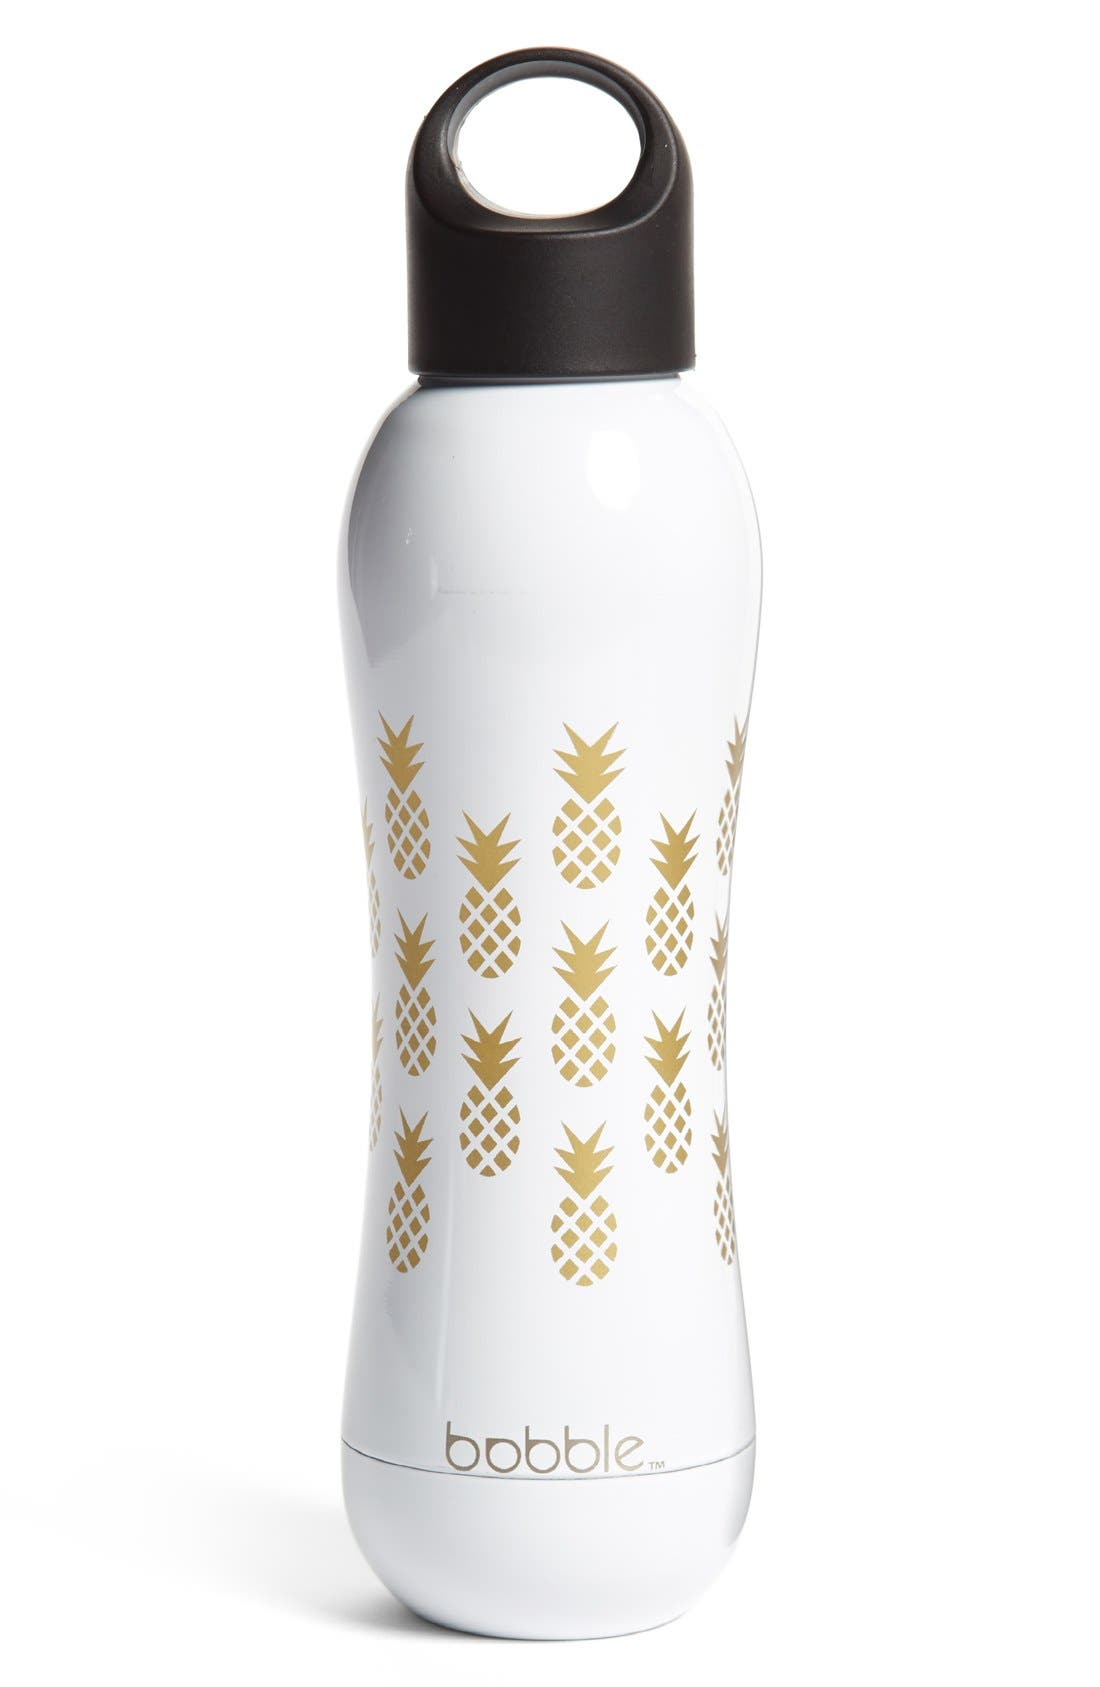 'Pining for You' Stainless Steel Water Bottle,                         Main,                         color, 100